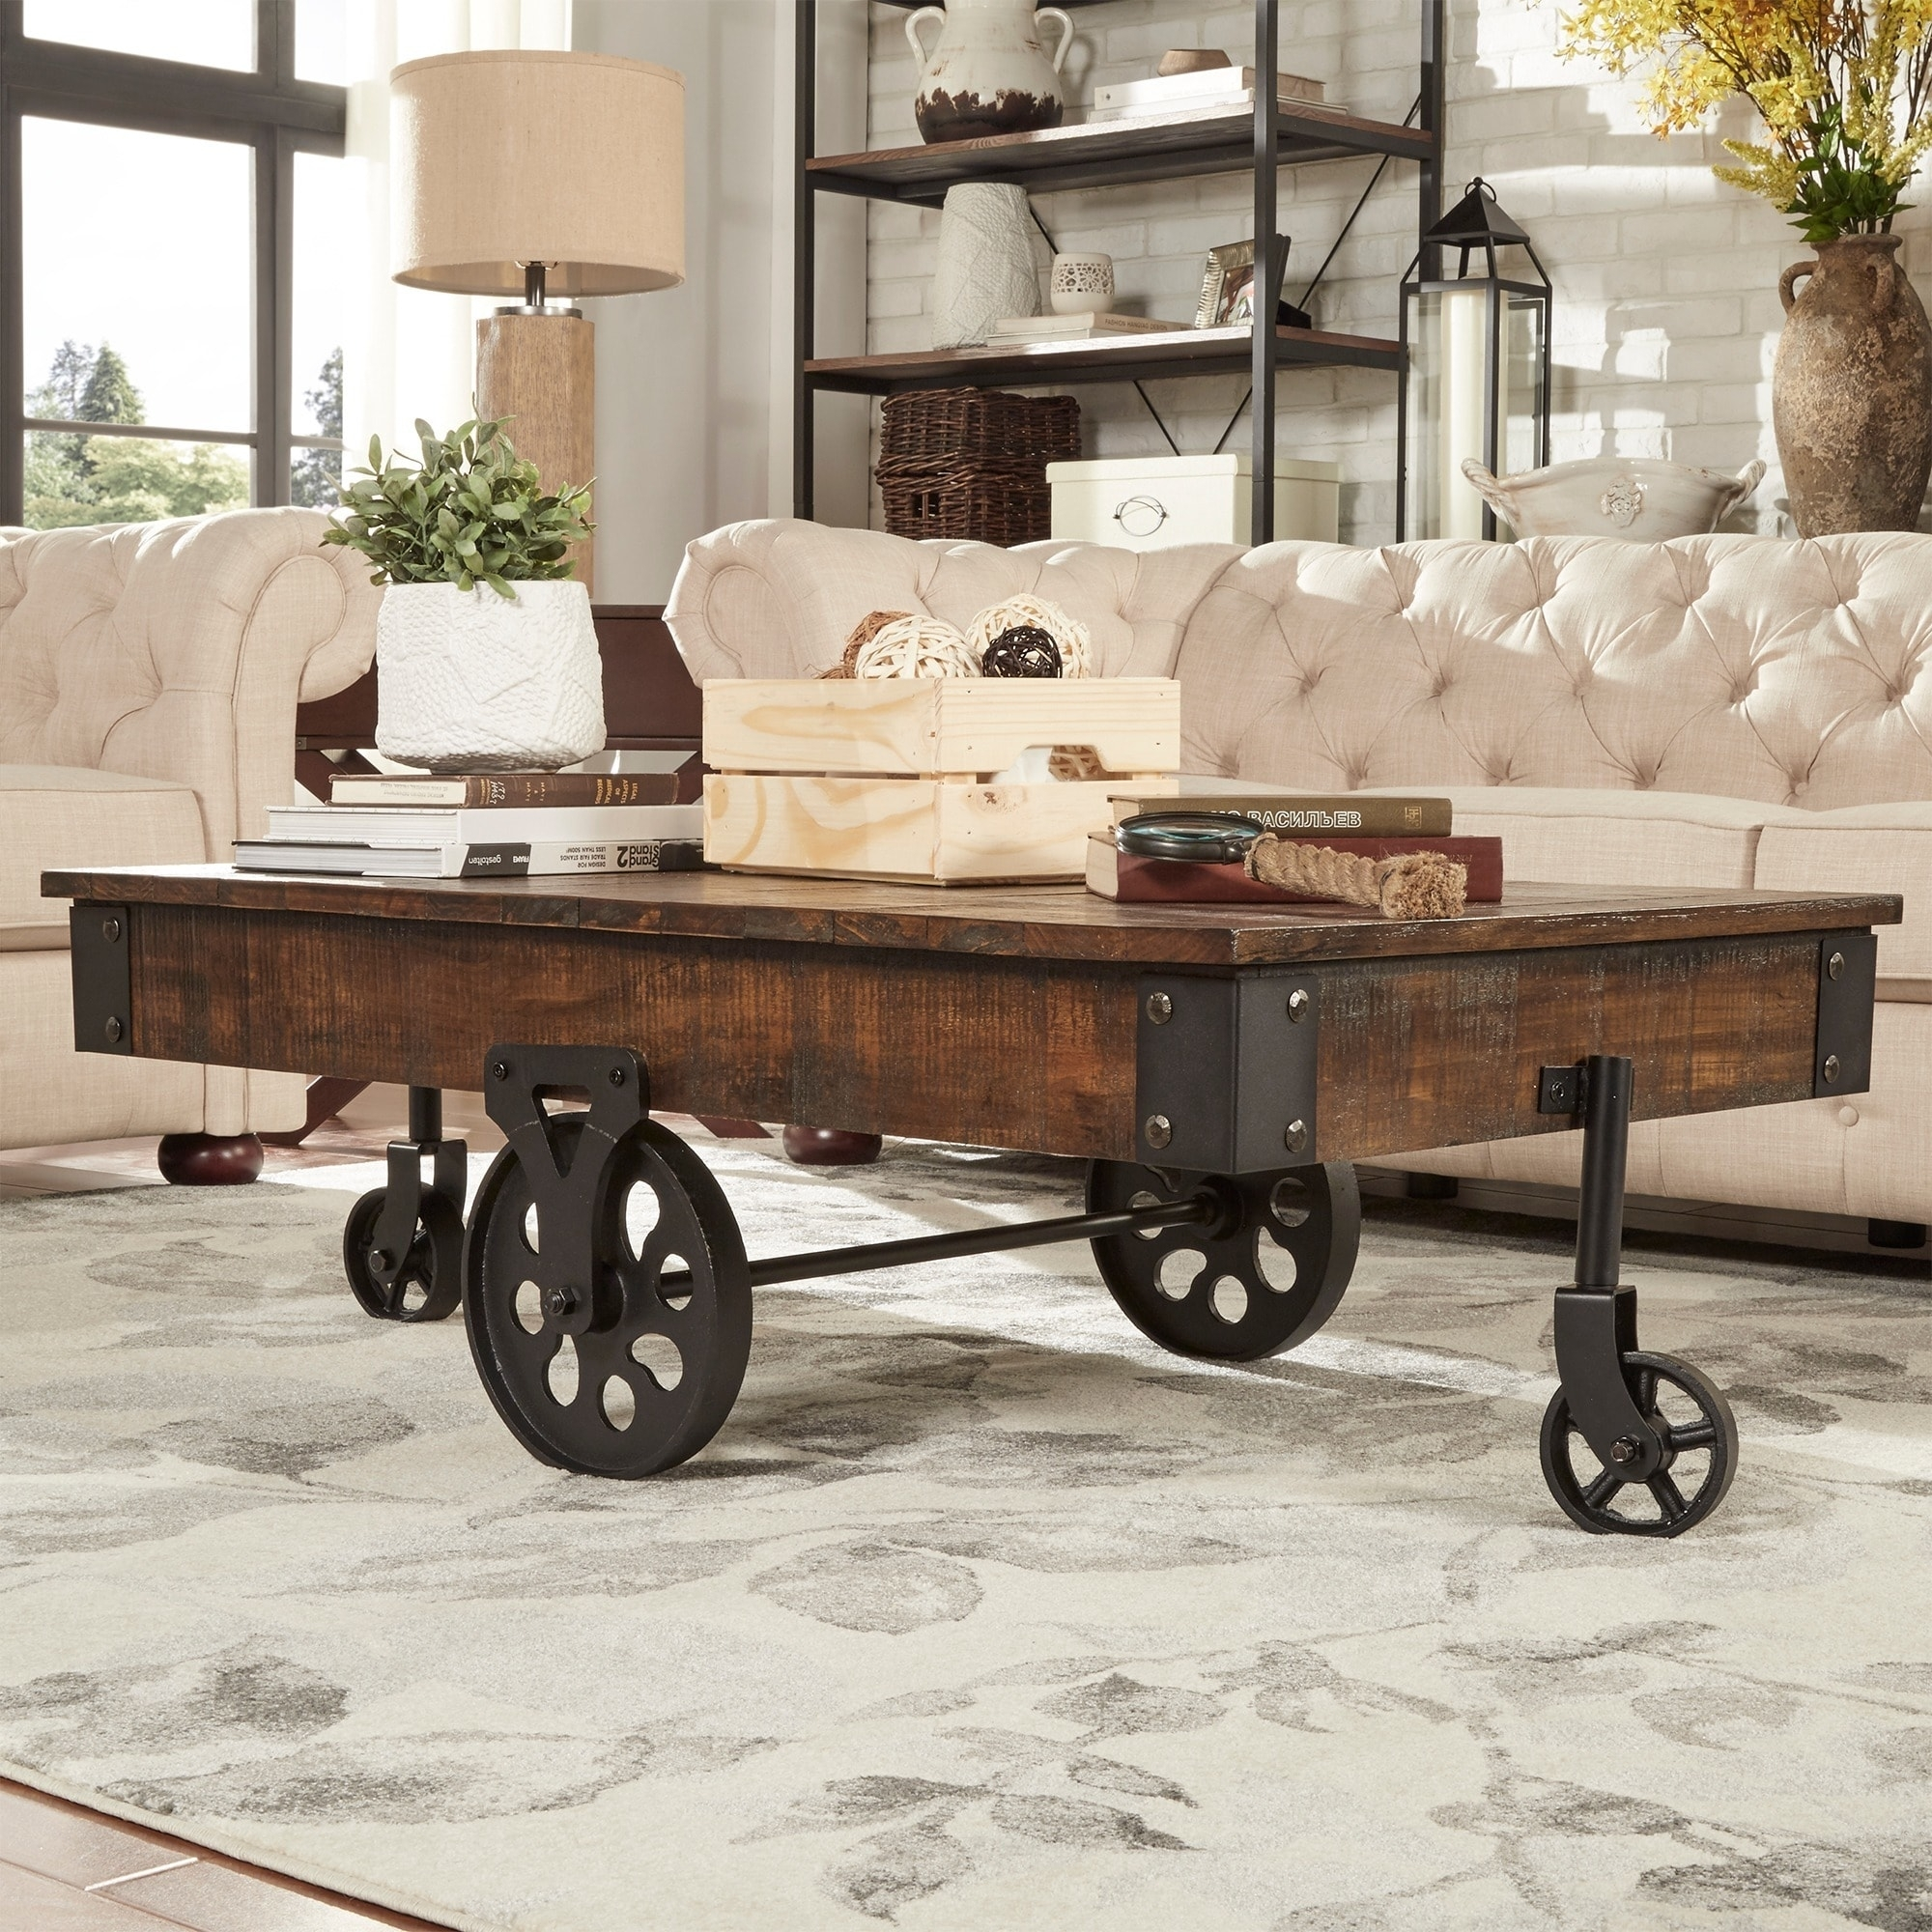 Shop Myra Vintage Industrial Modern Rustic 47-Inch Coffee Table intended for Modern Rustic Coffee Tables (Image 28 of 30)